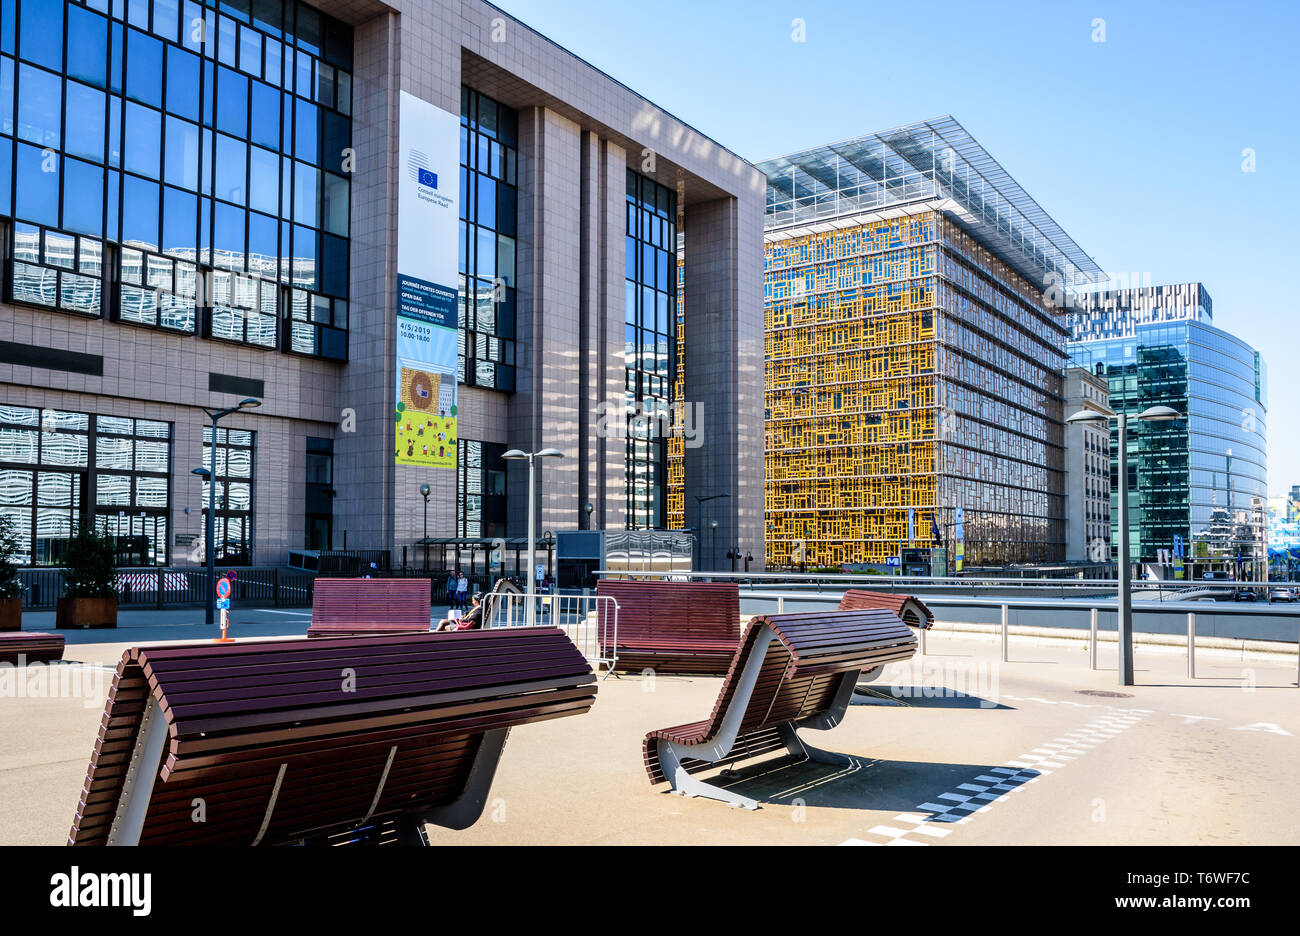 The Justus Lipsius building (left) and Europa building (right), seat of the European Council in Brussels, Belgium, with public benches in front. - Stock Image